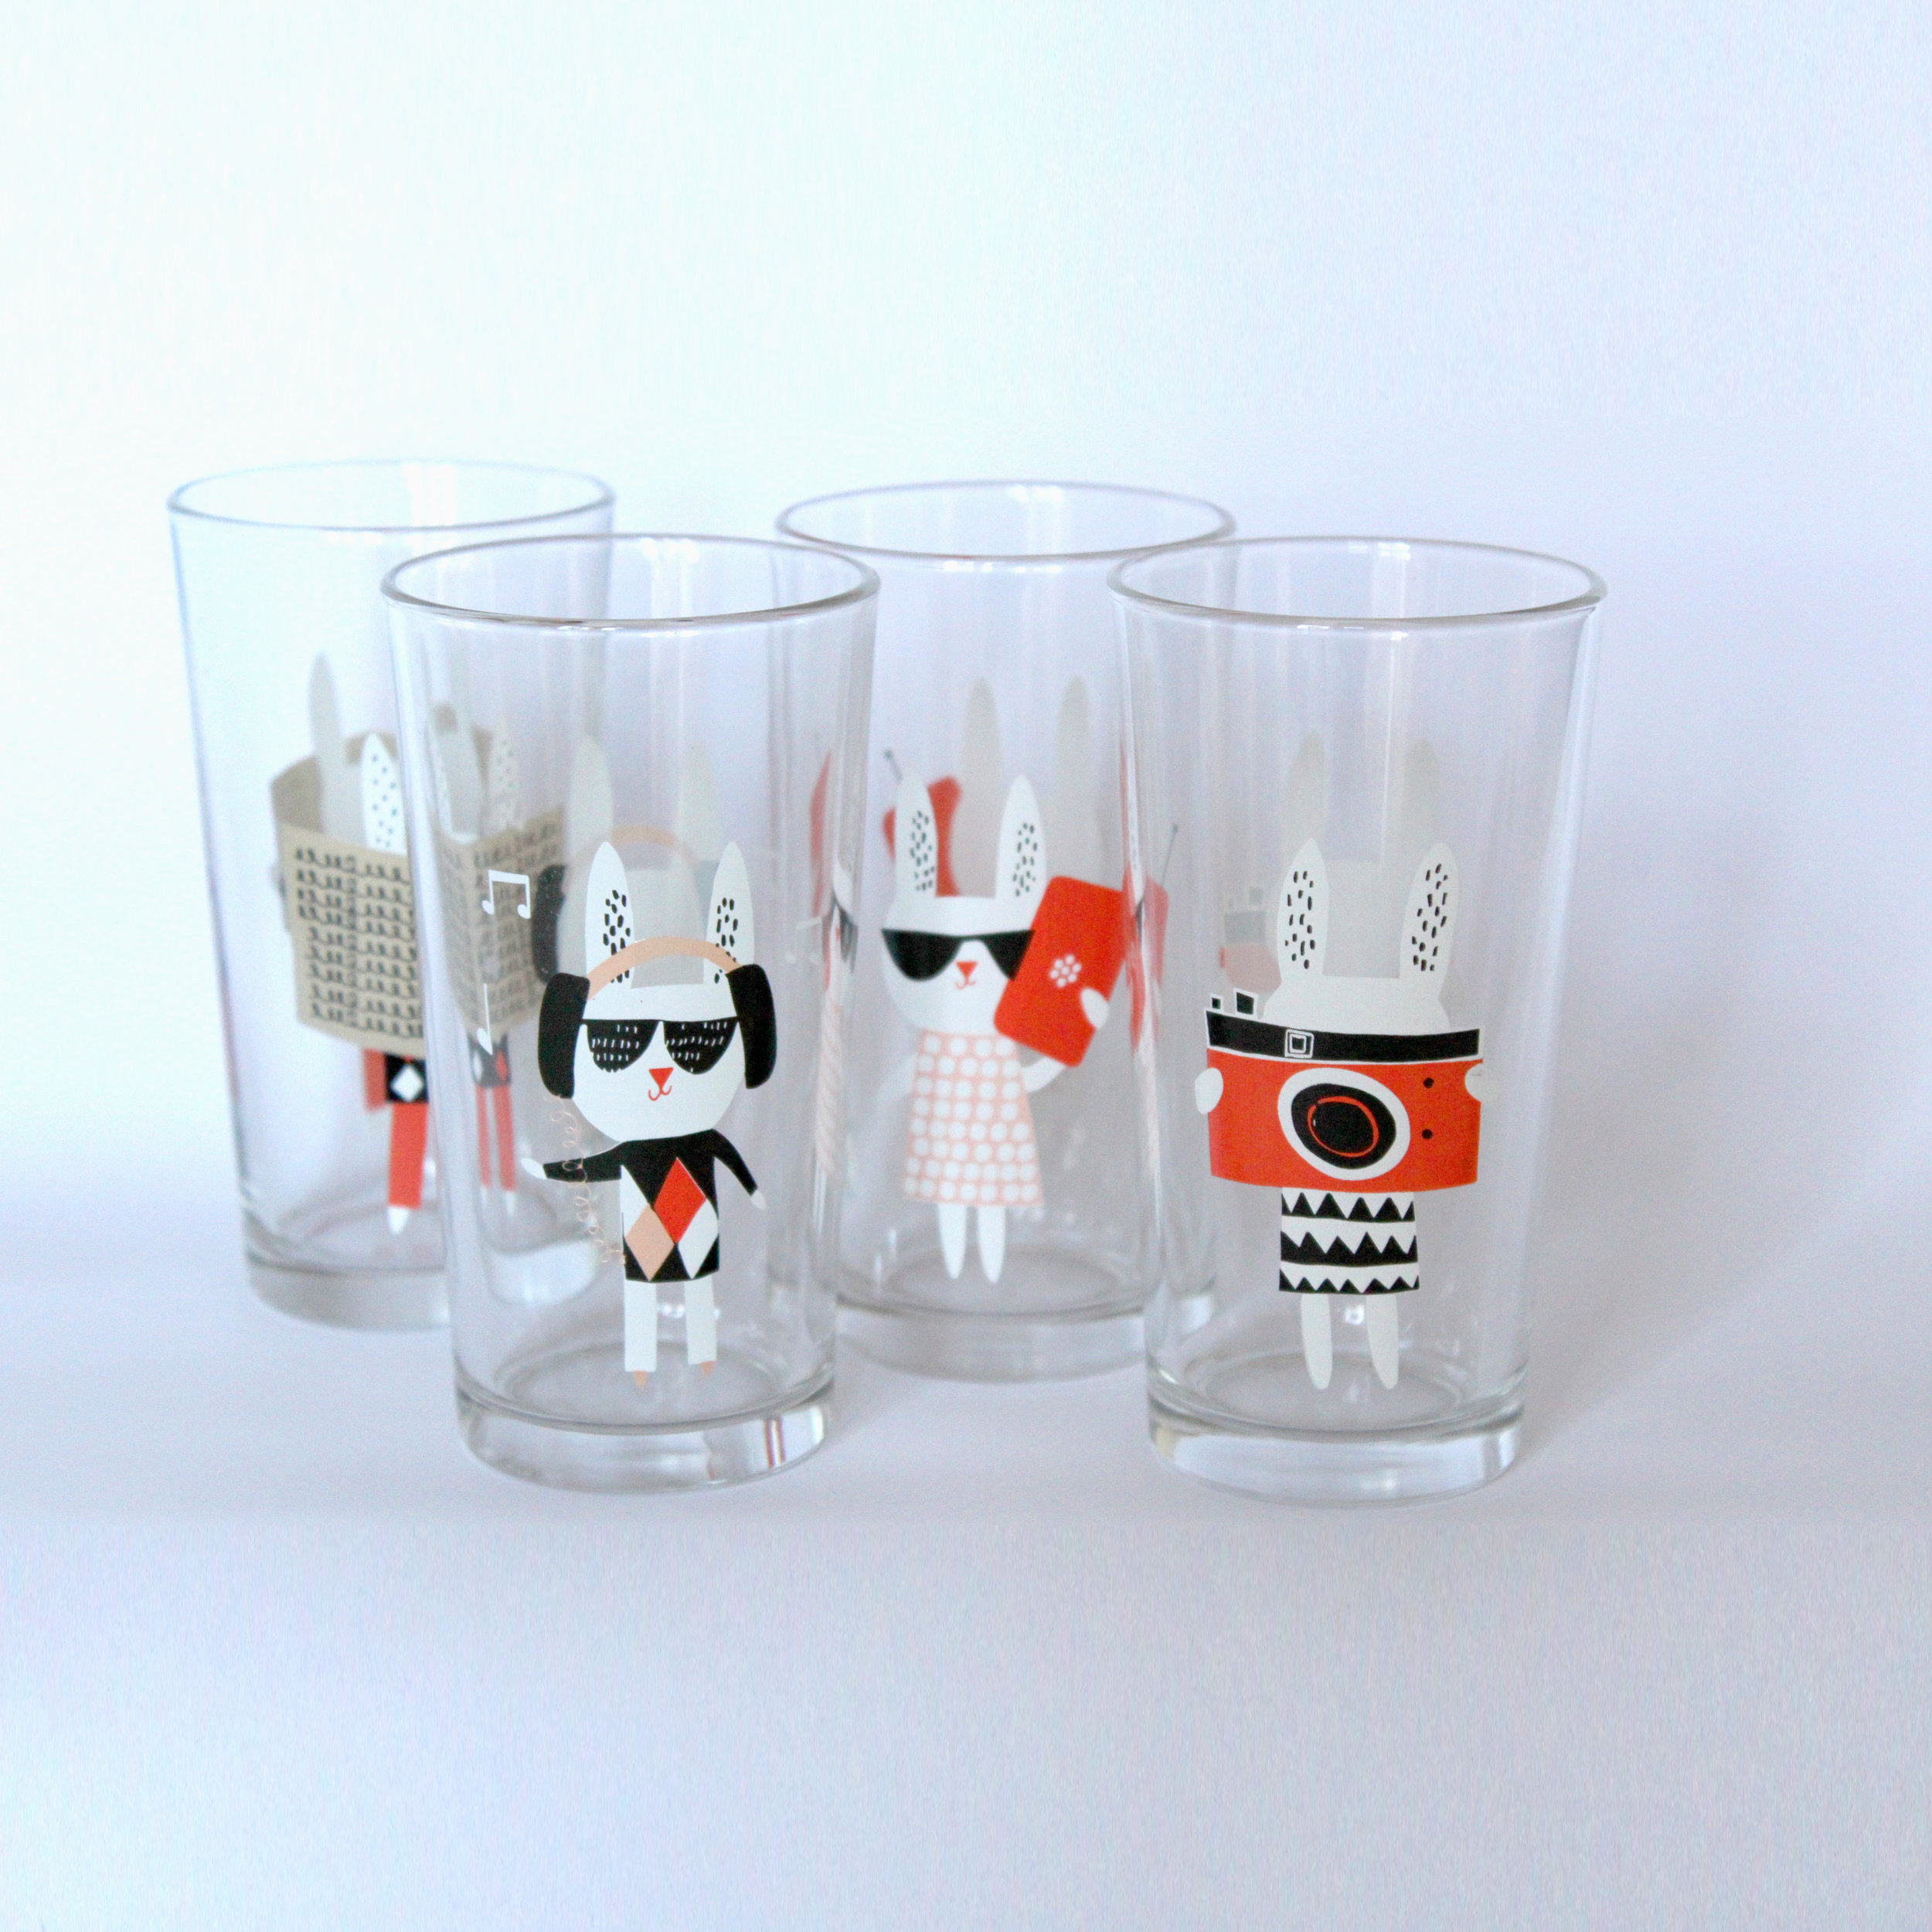 Set of glasses with Make International